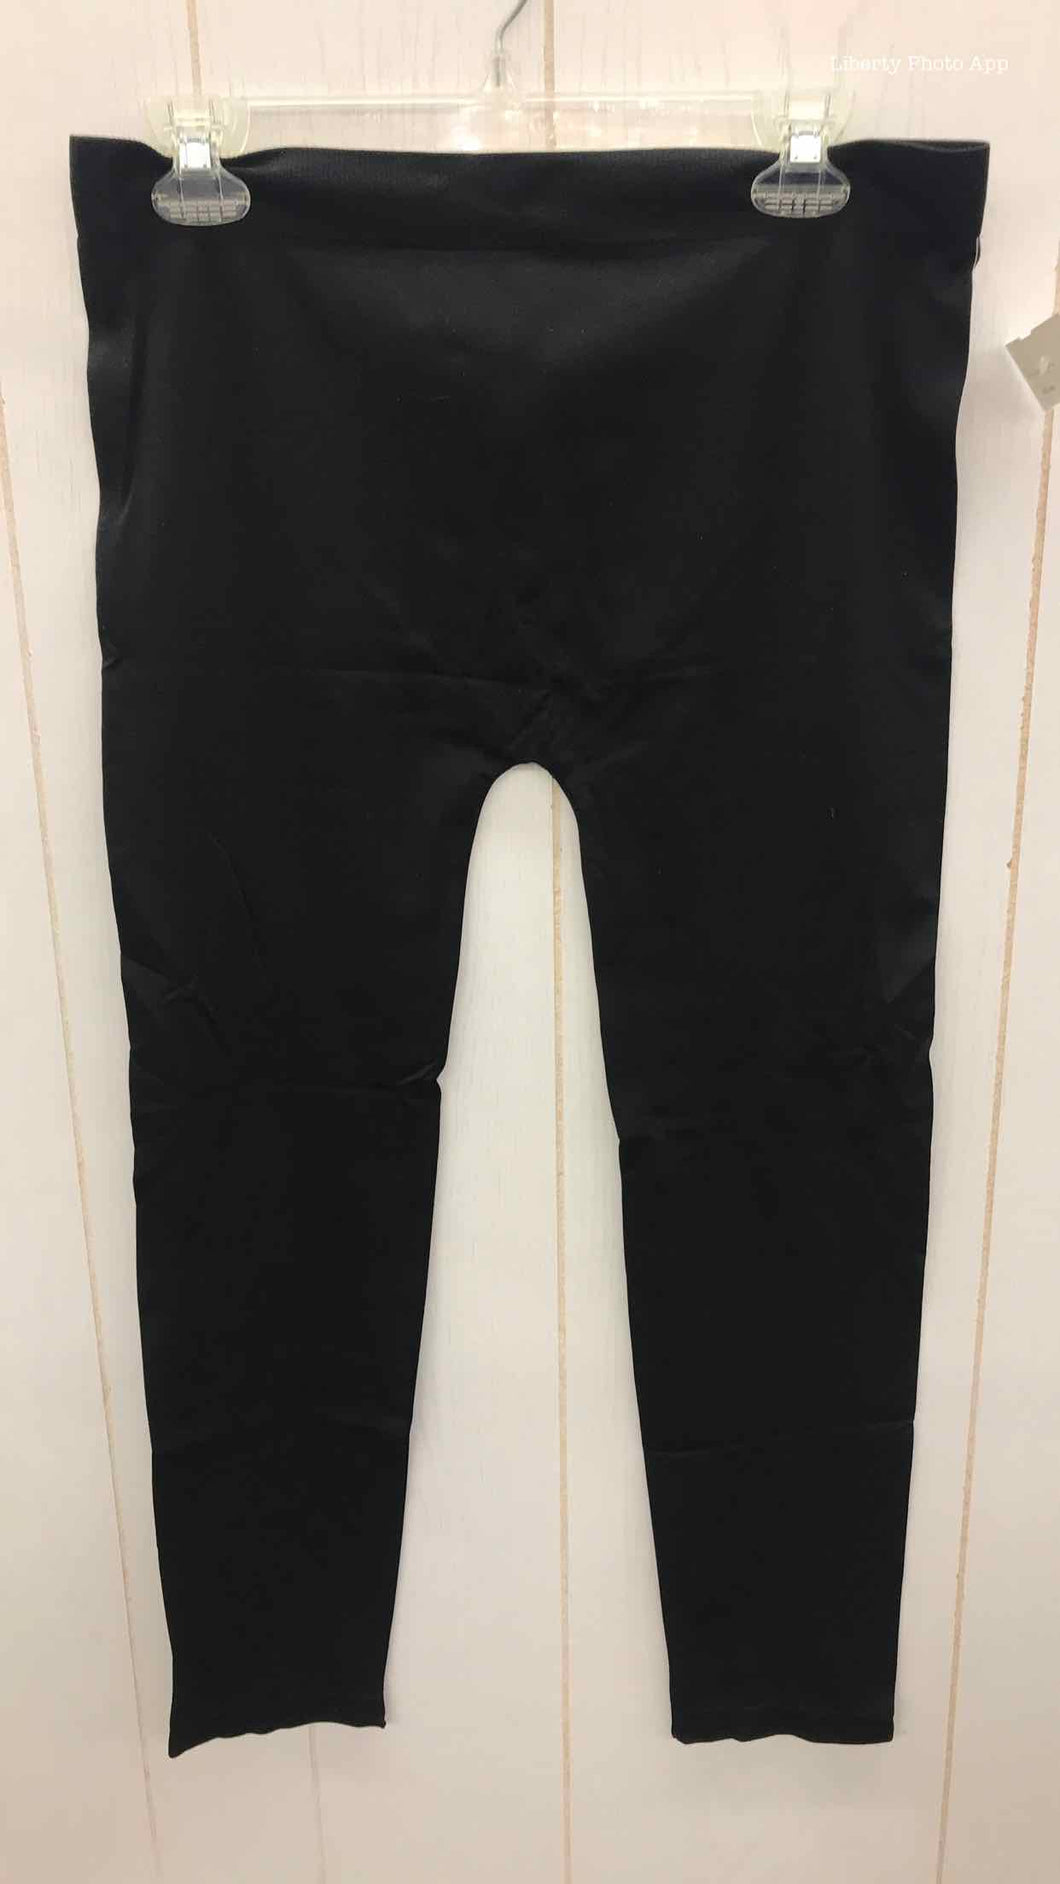 Black Active Basic Womens Size 18 Leggings